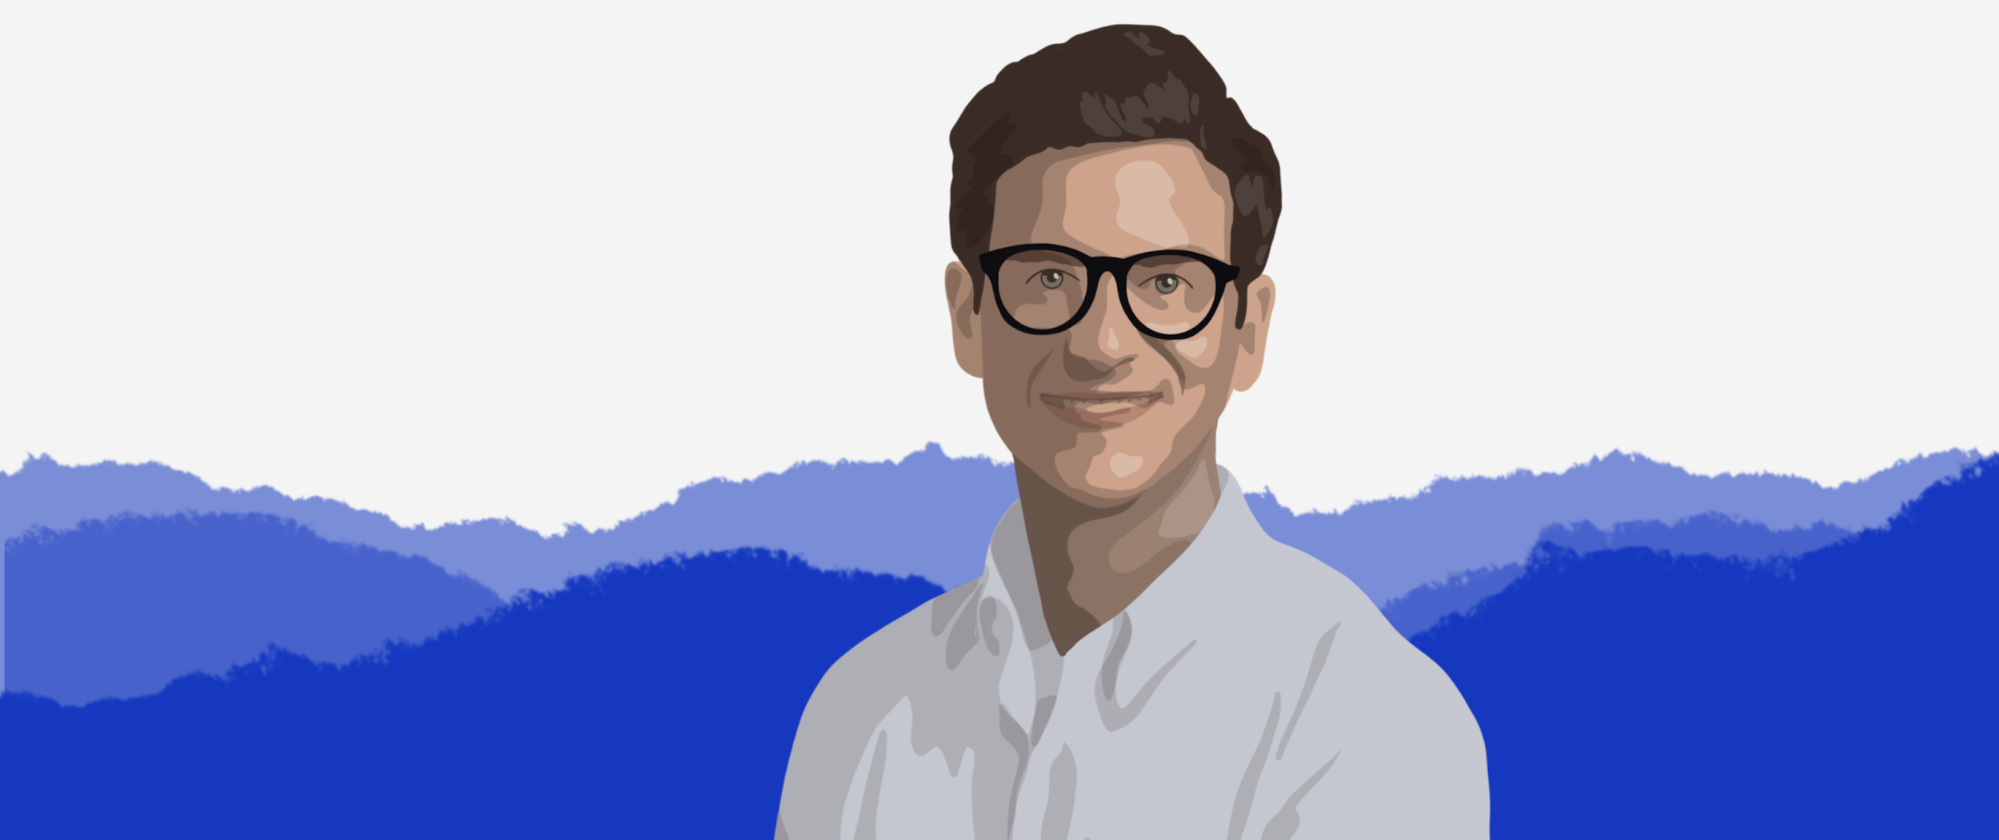 Dave Gilboa on Seeking More Retail Space (Not Less), and Reopening Warby Parker